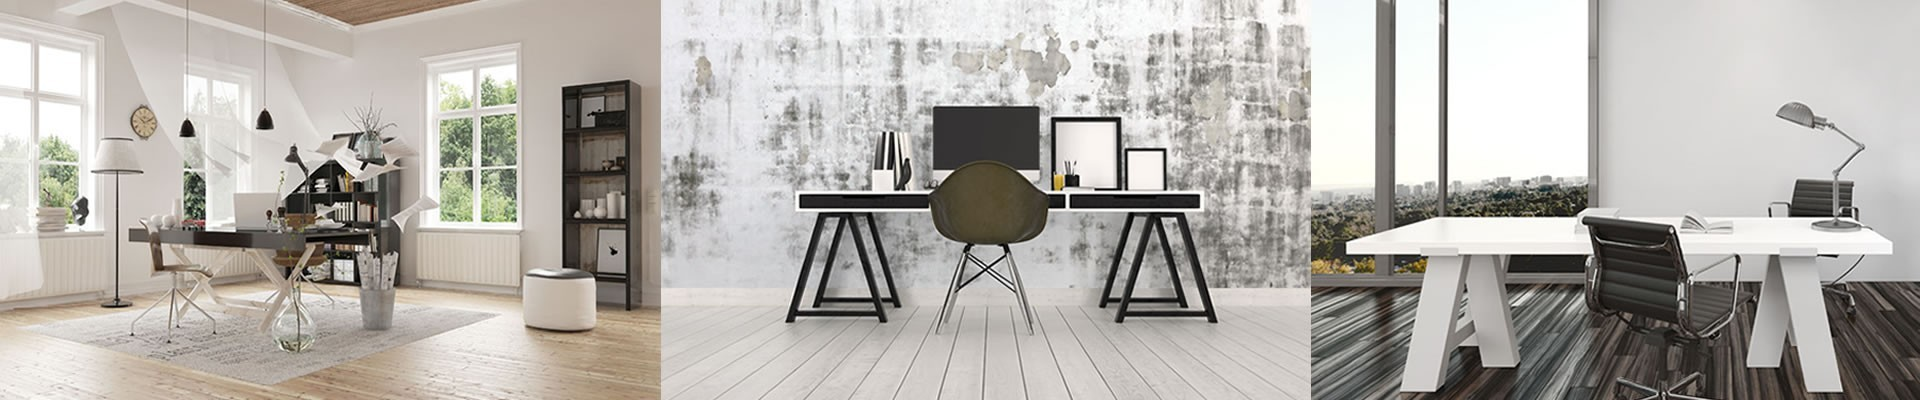 Home Office | Desks, Chairs & Home Office Furniture